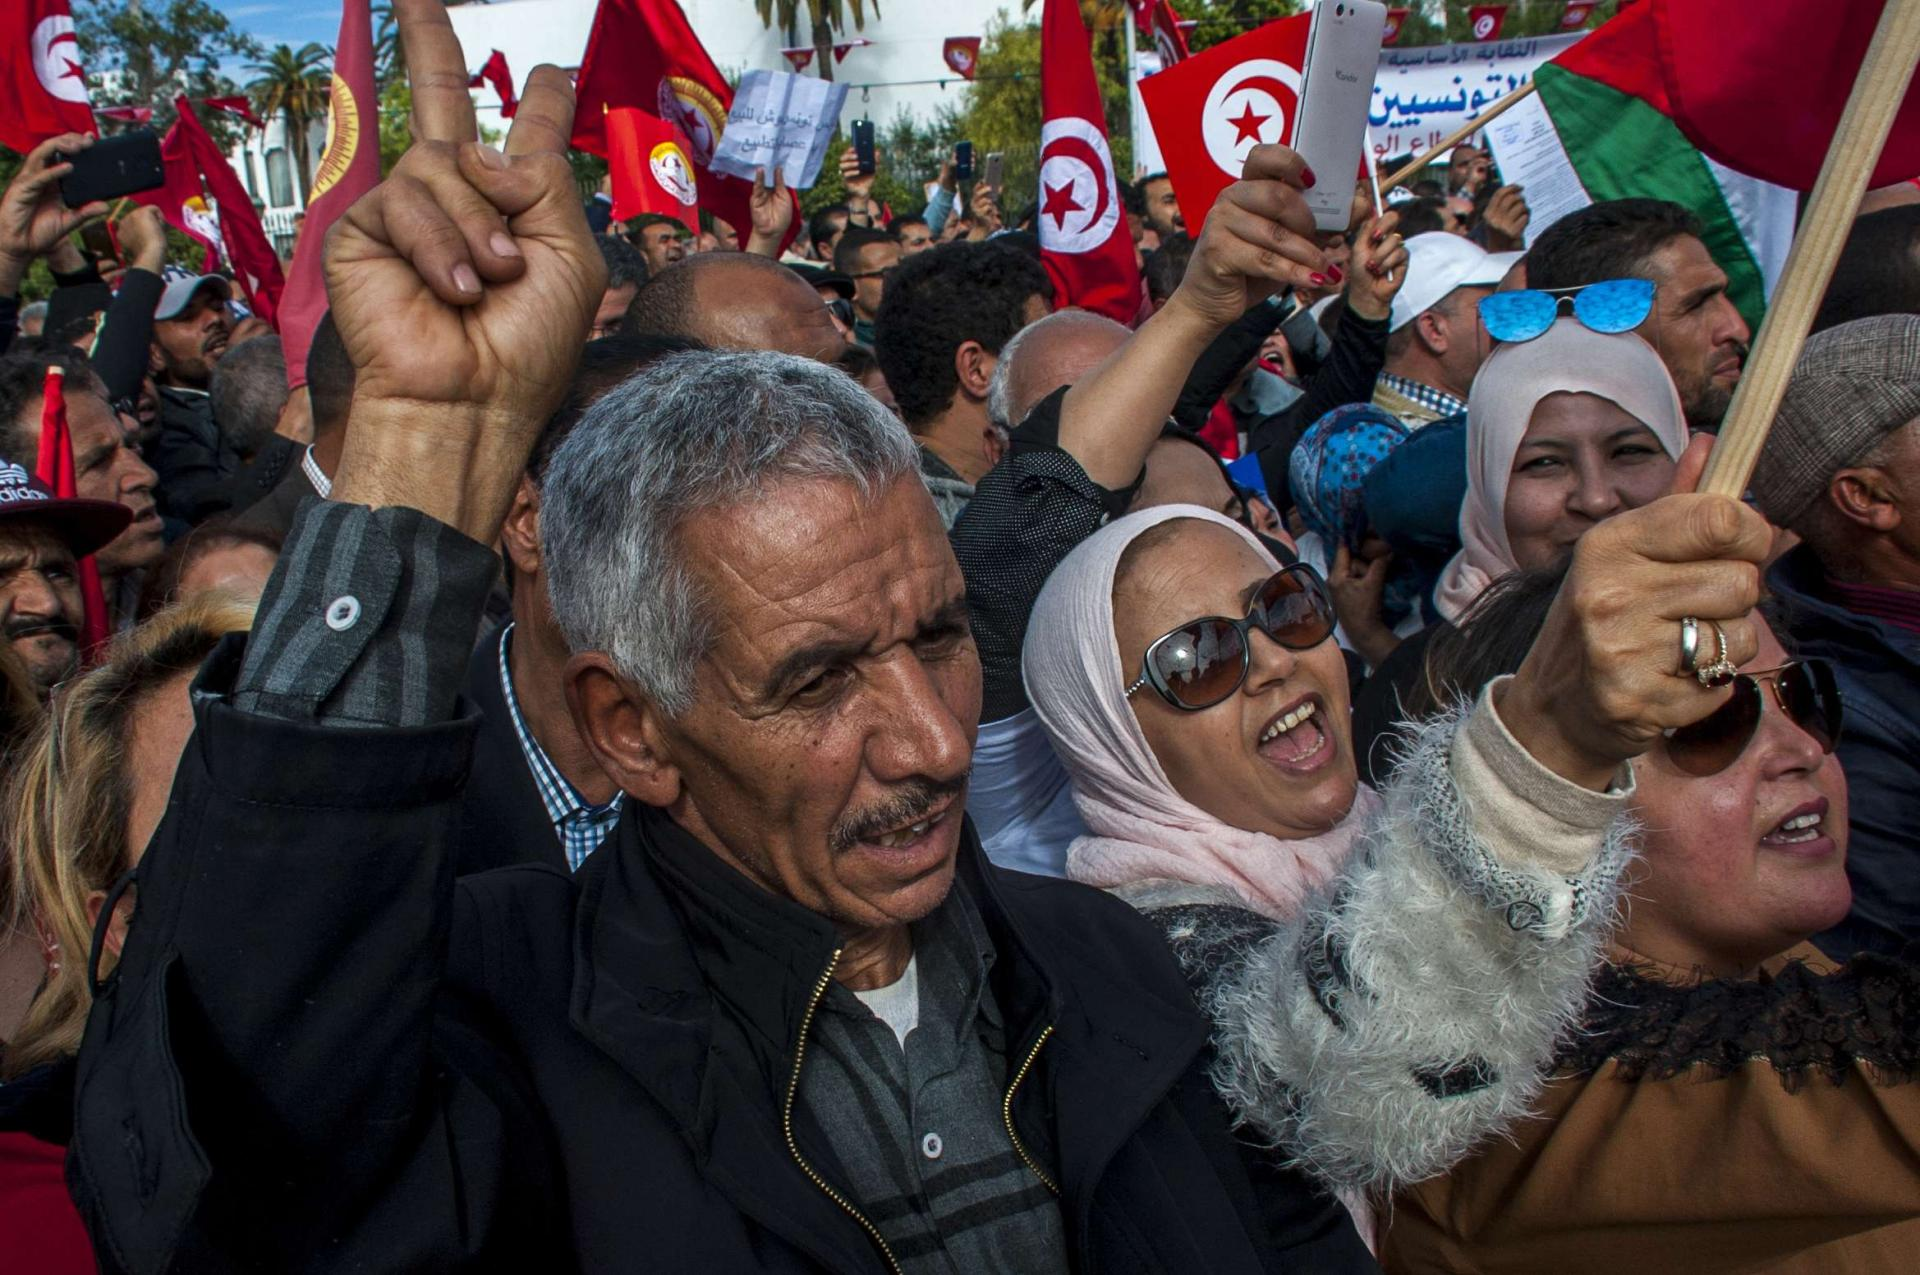 Hundreds of Tunisian public-sector workers demonstrate after failing to reach a wage agreement with the government in Tunis on Nov. 22, 2018.